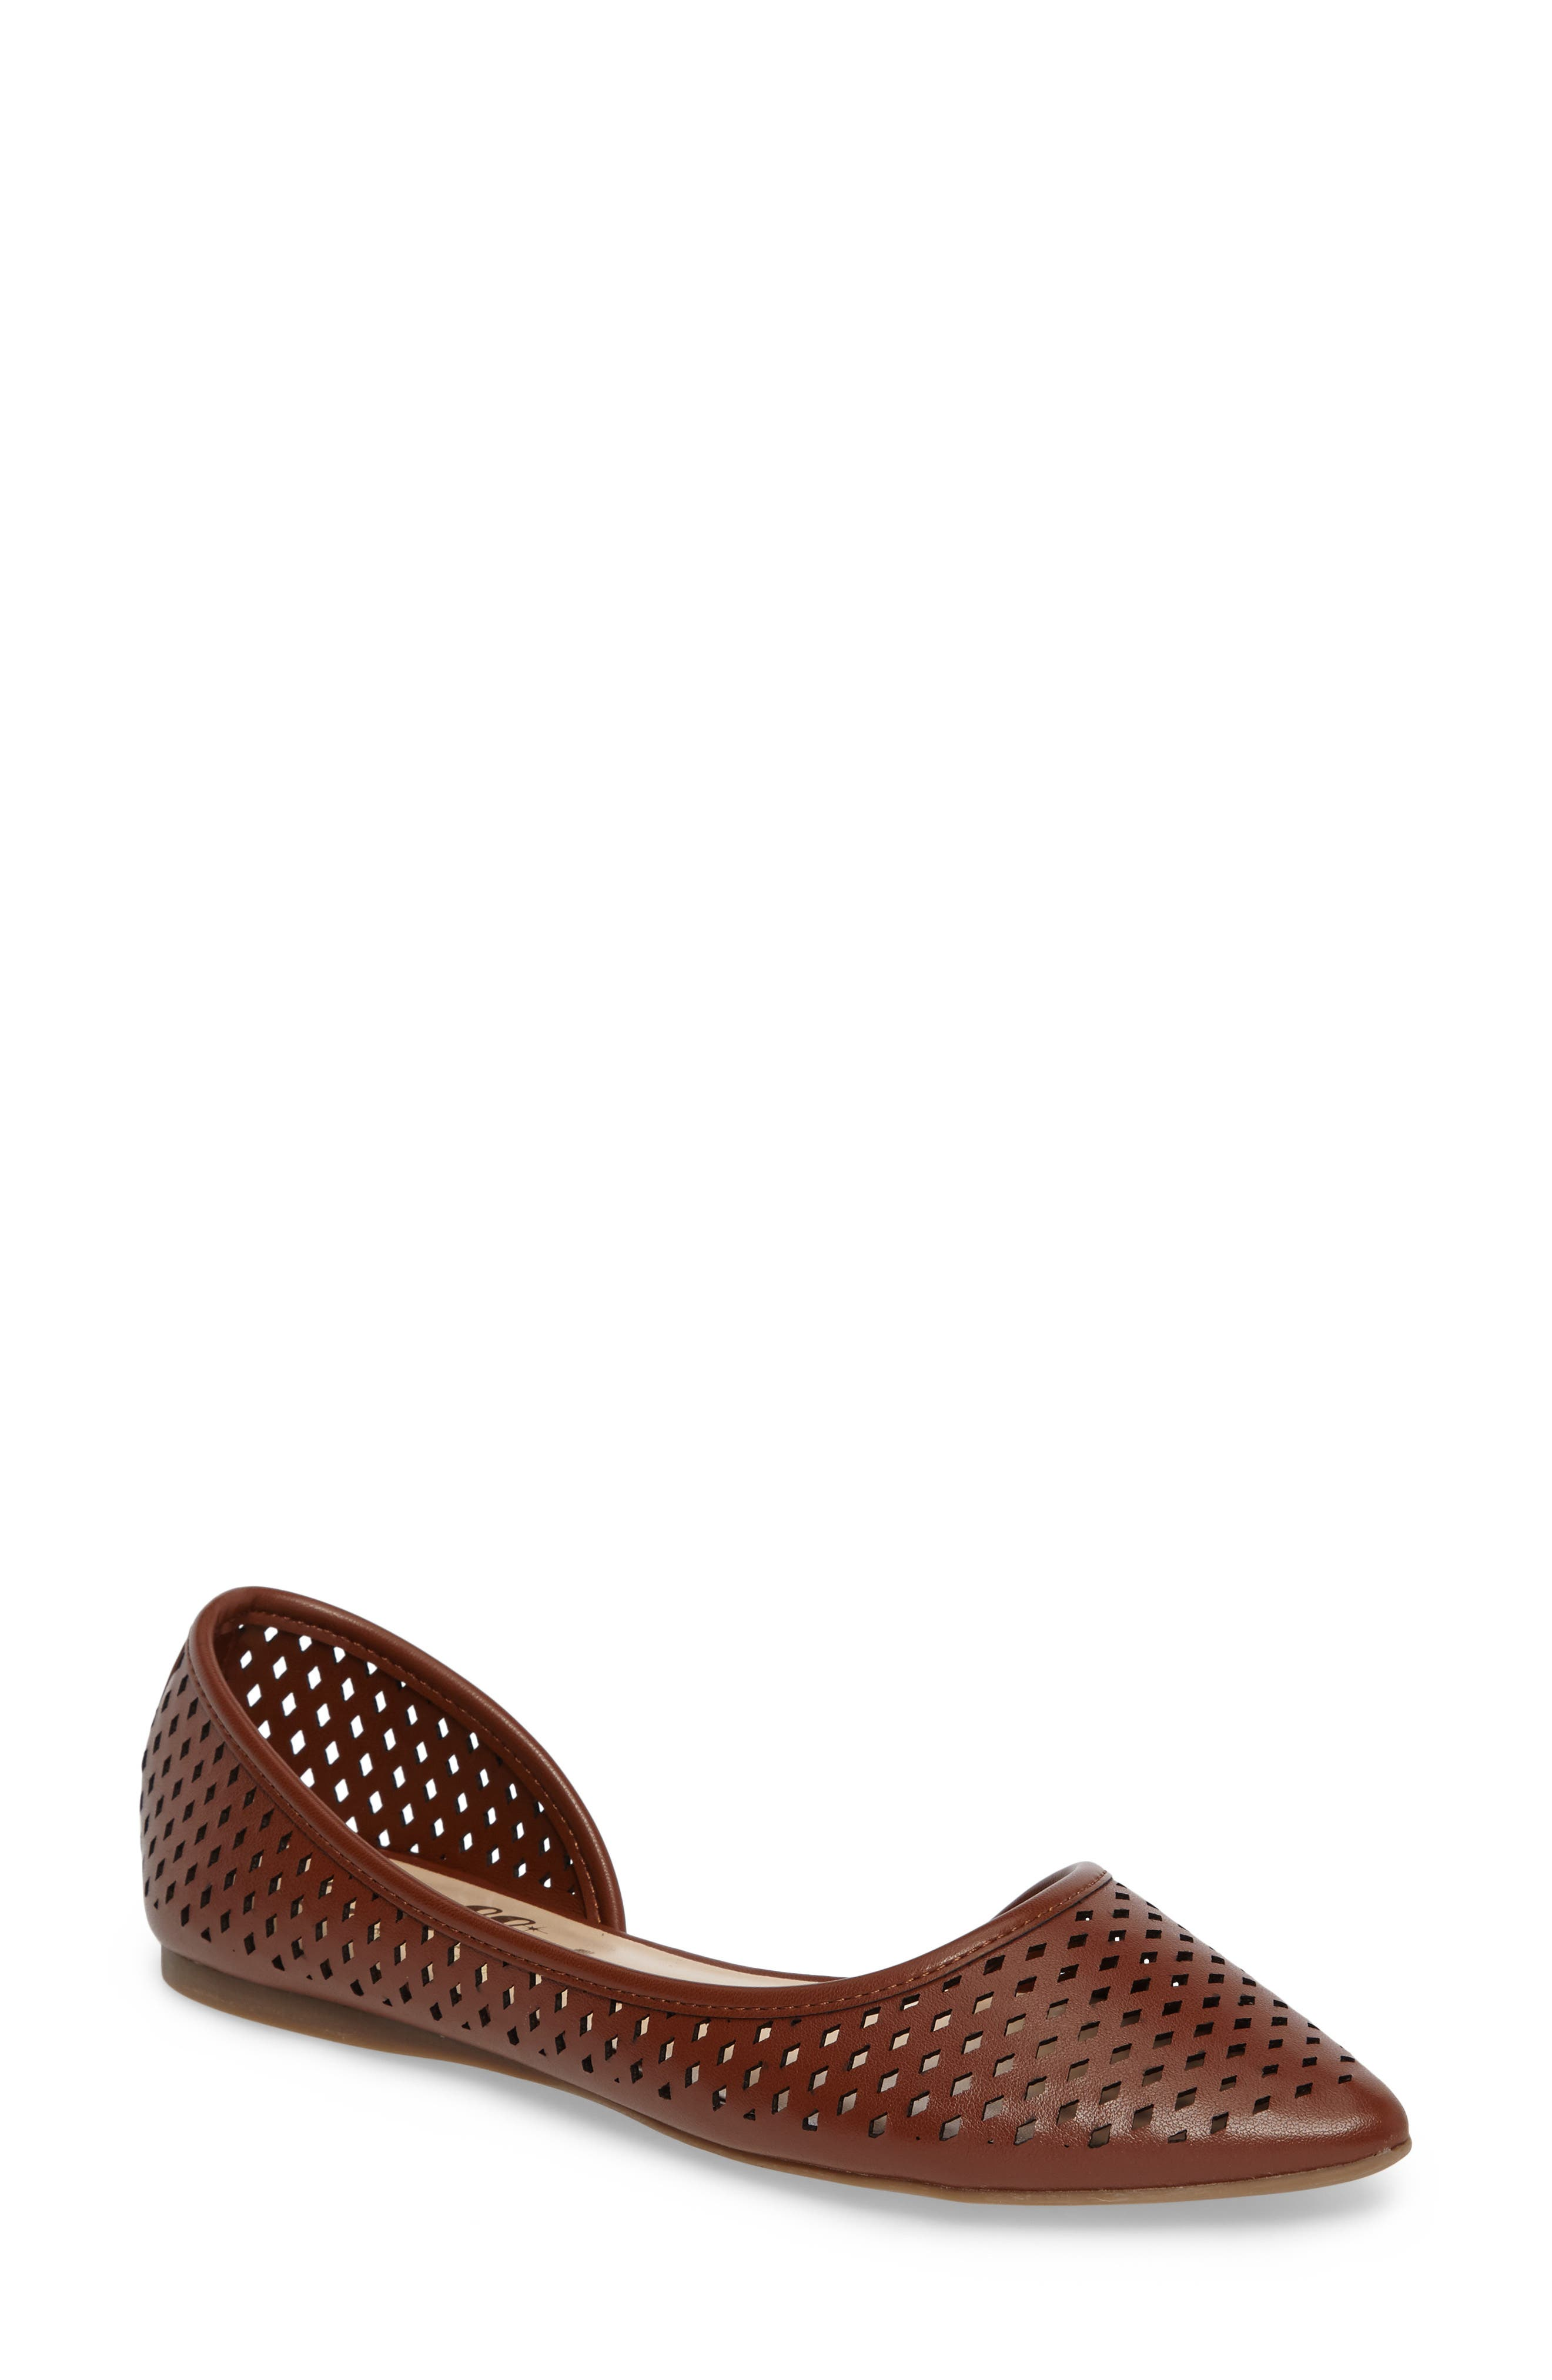 Swiftye Half d'Orsay Flat,                             Main thumbnail 1, color,                             Tan Synthetic Leather